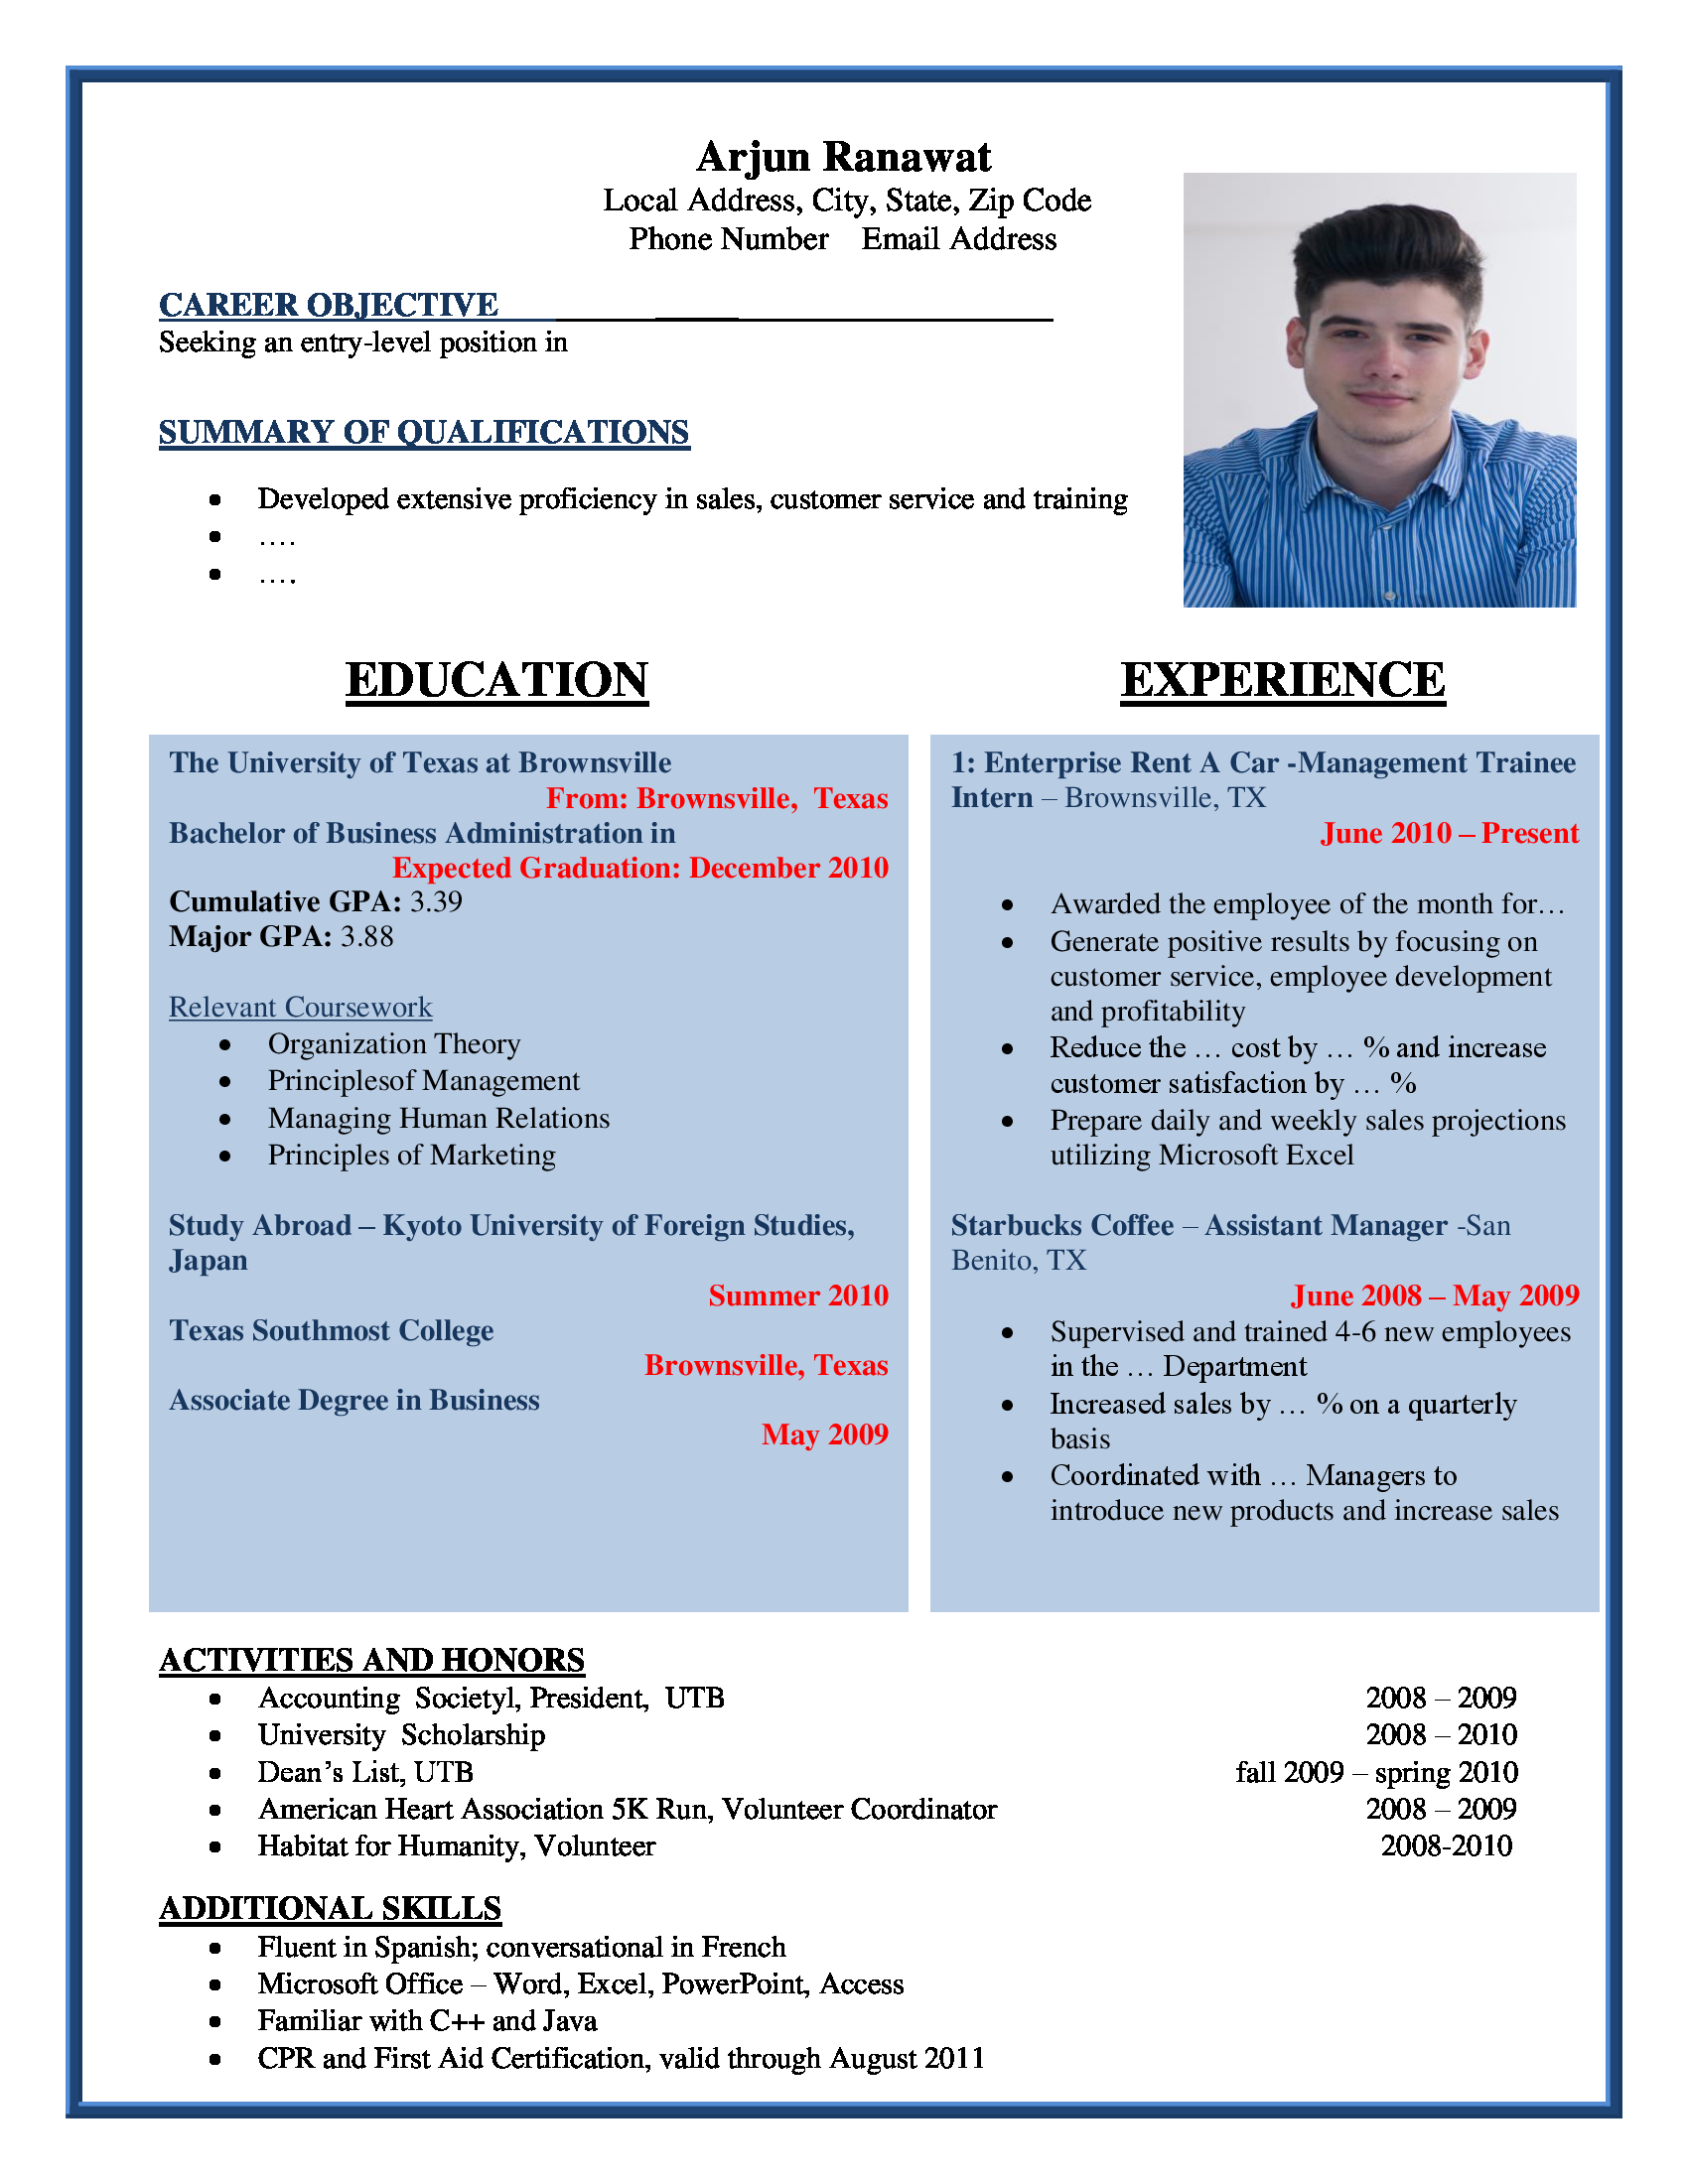 best_resumebest resume 4 - Resume In Html Format